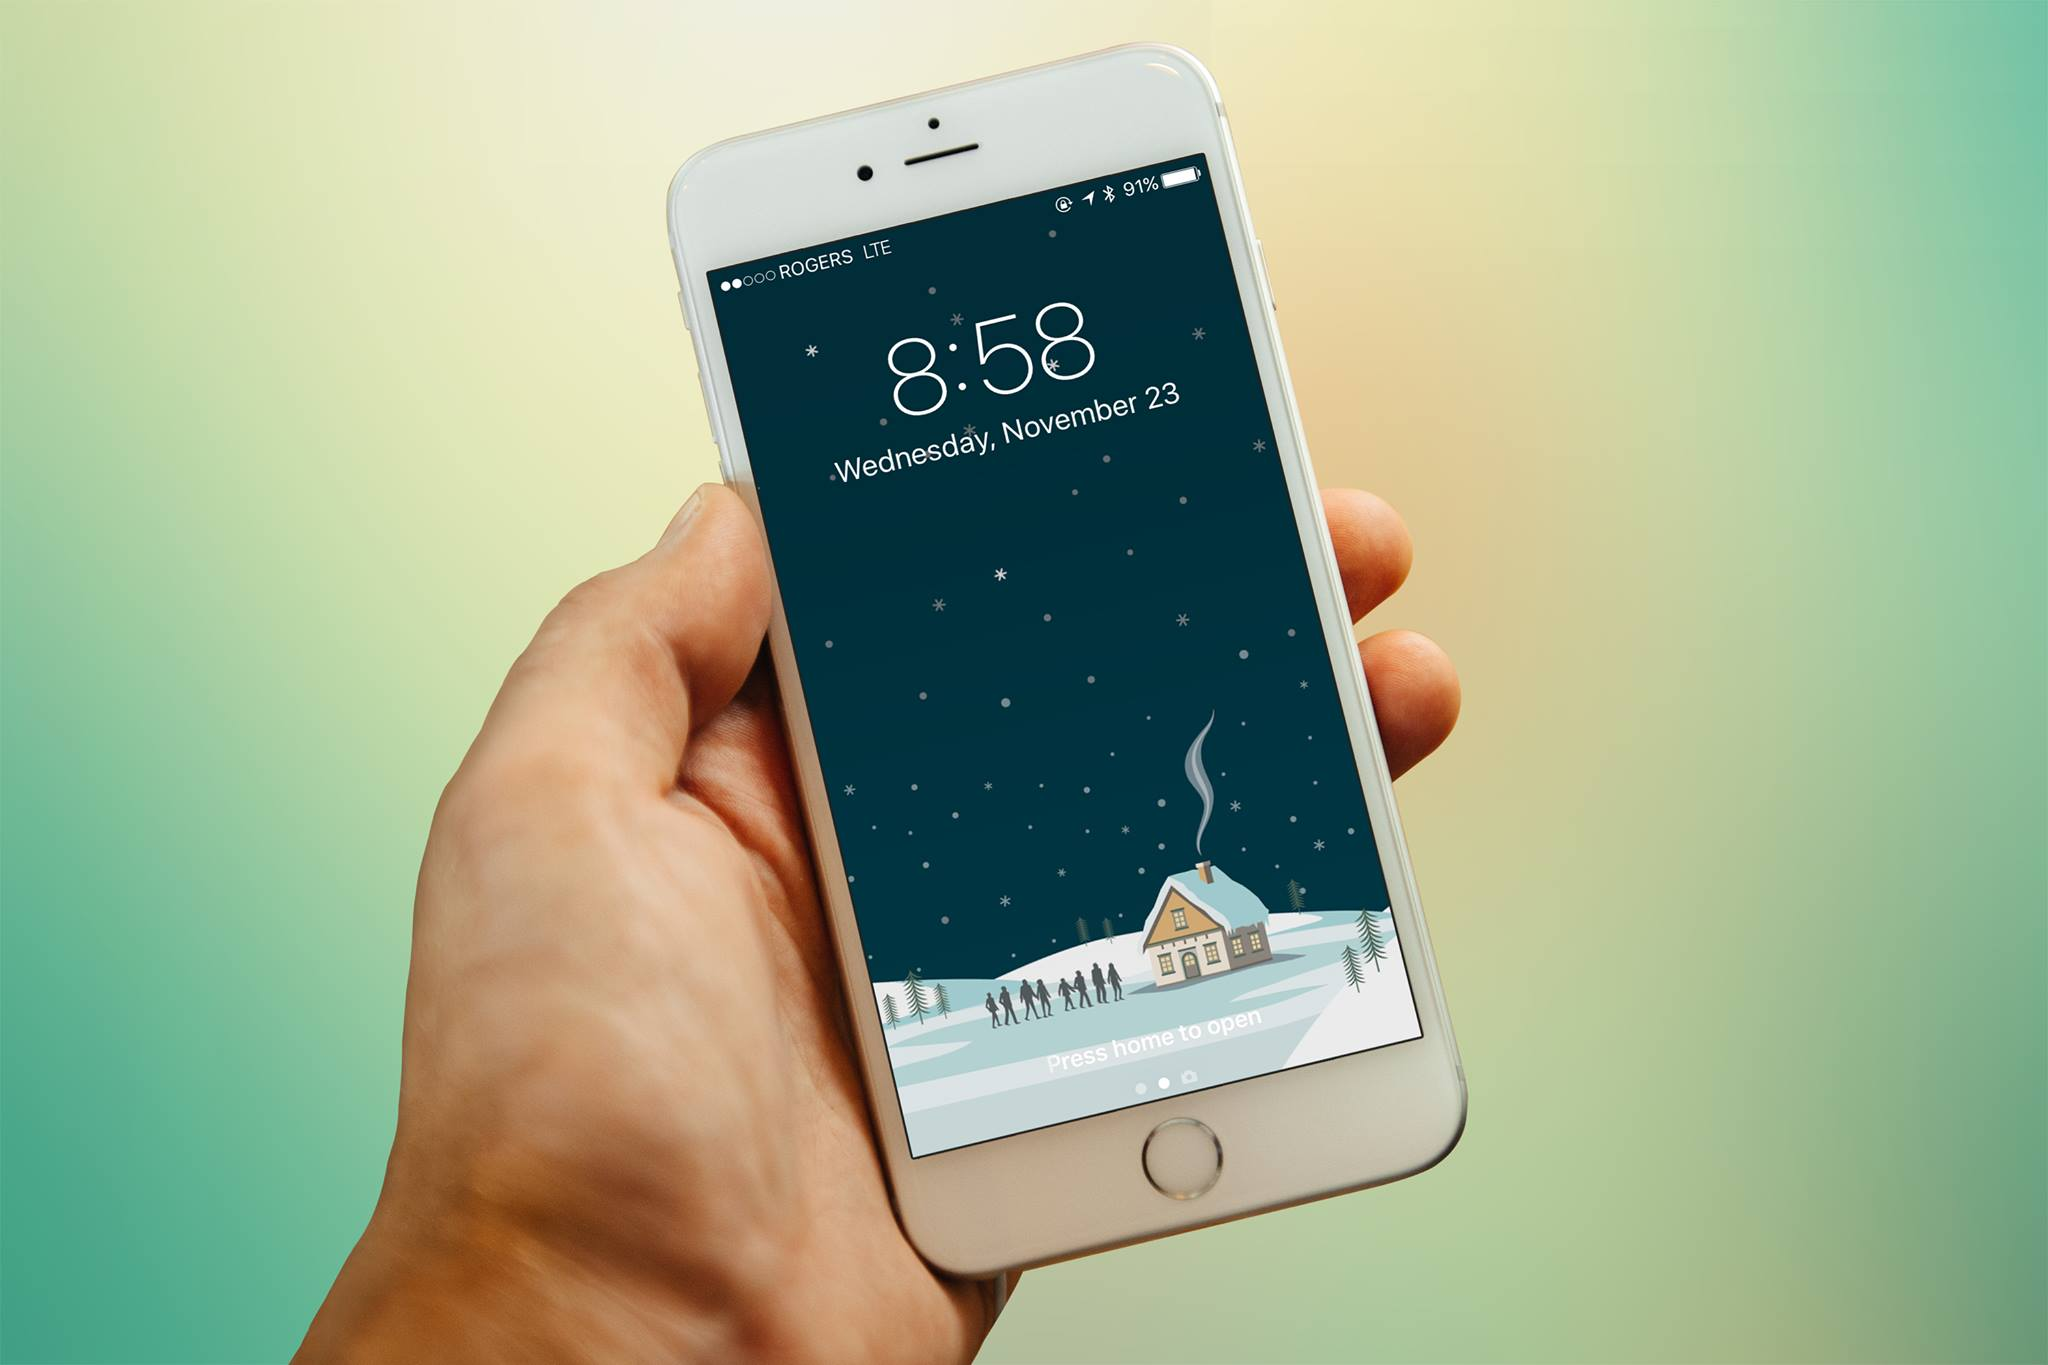 Hand holding an iPhone 6 displaying our latest Christmas wallpaper!